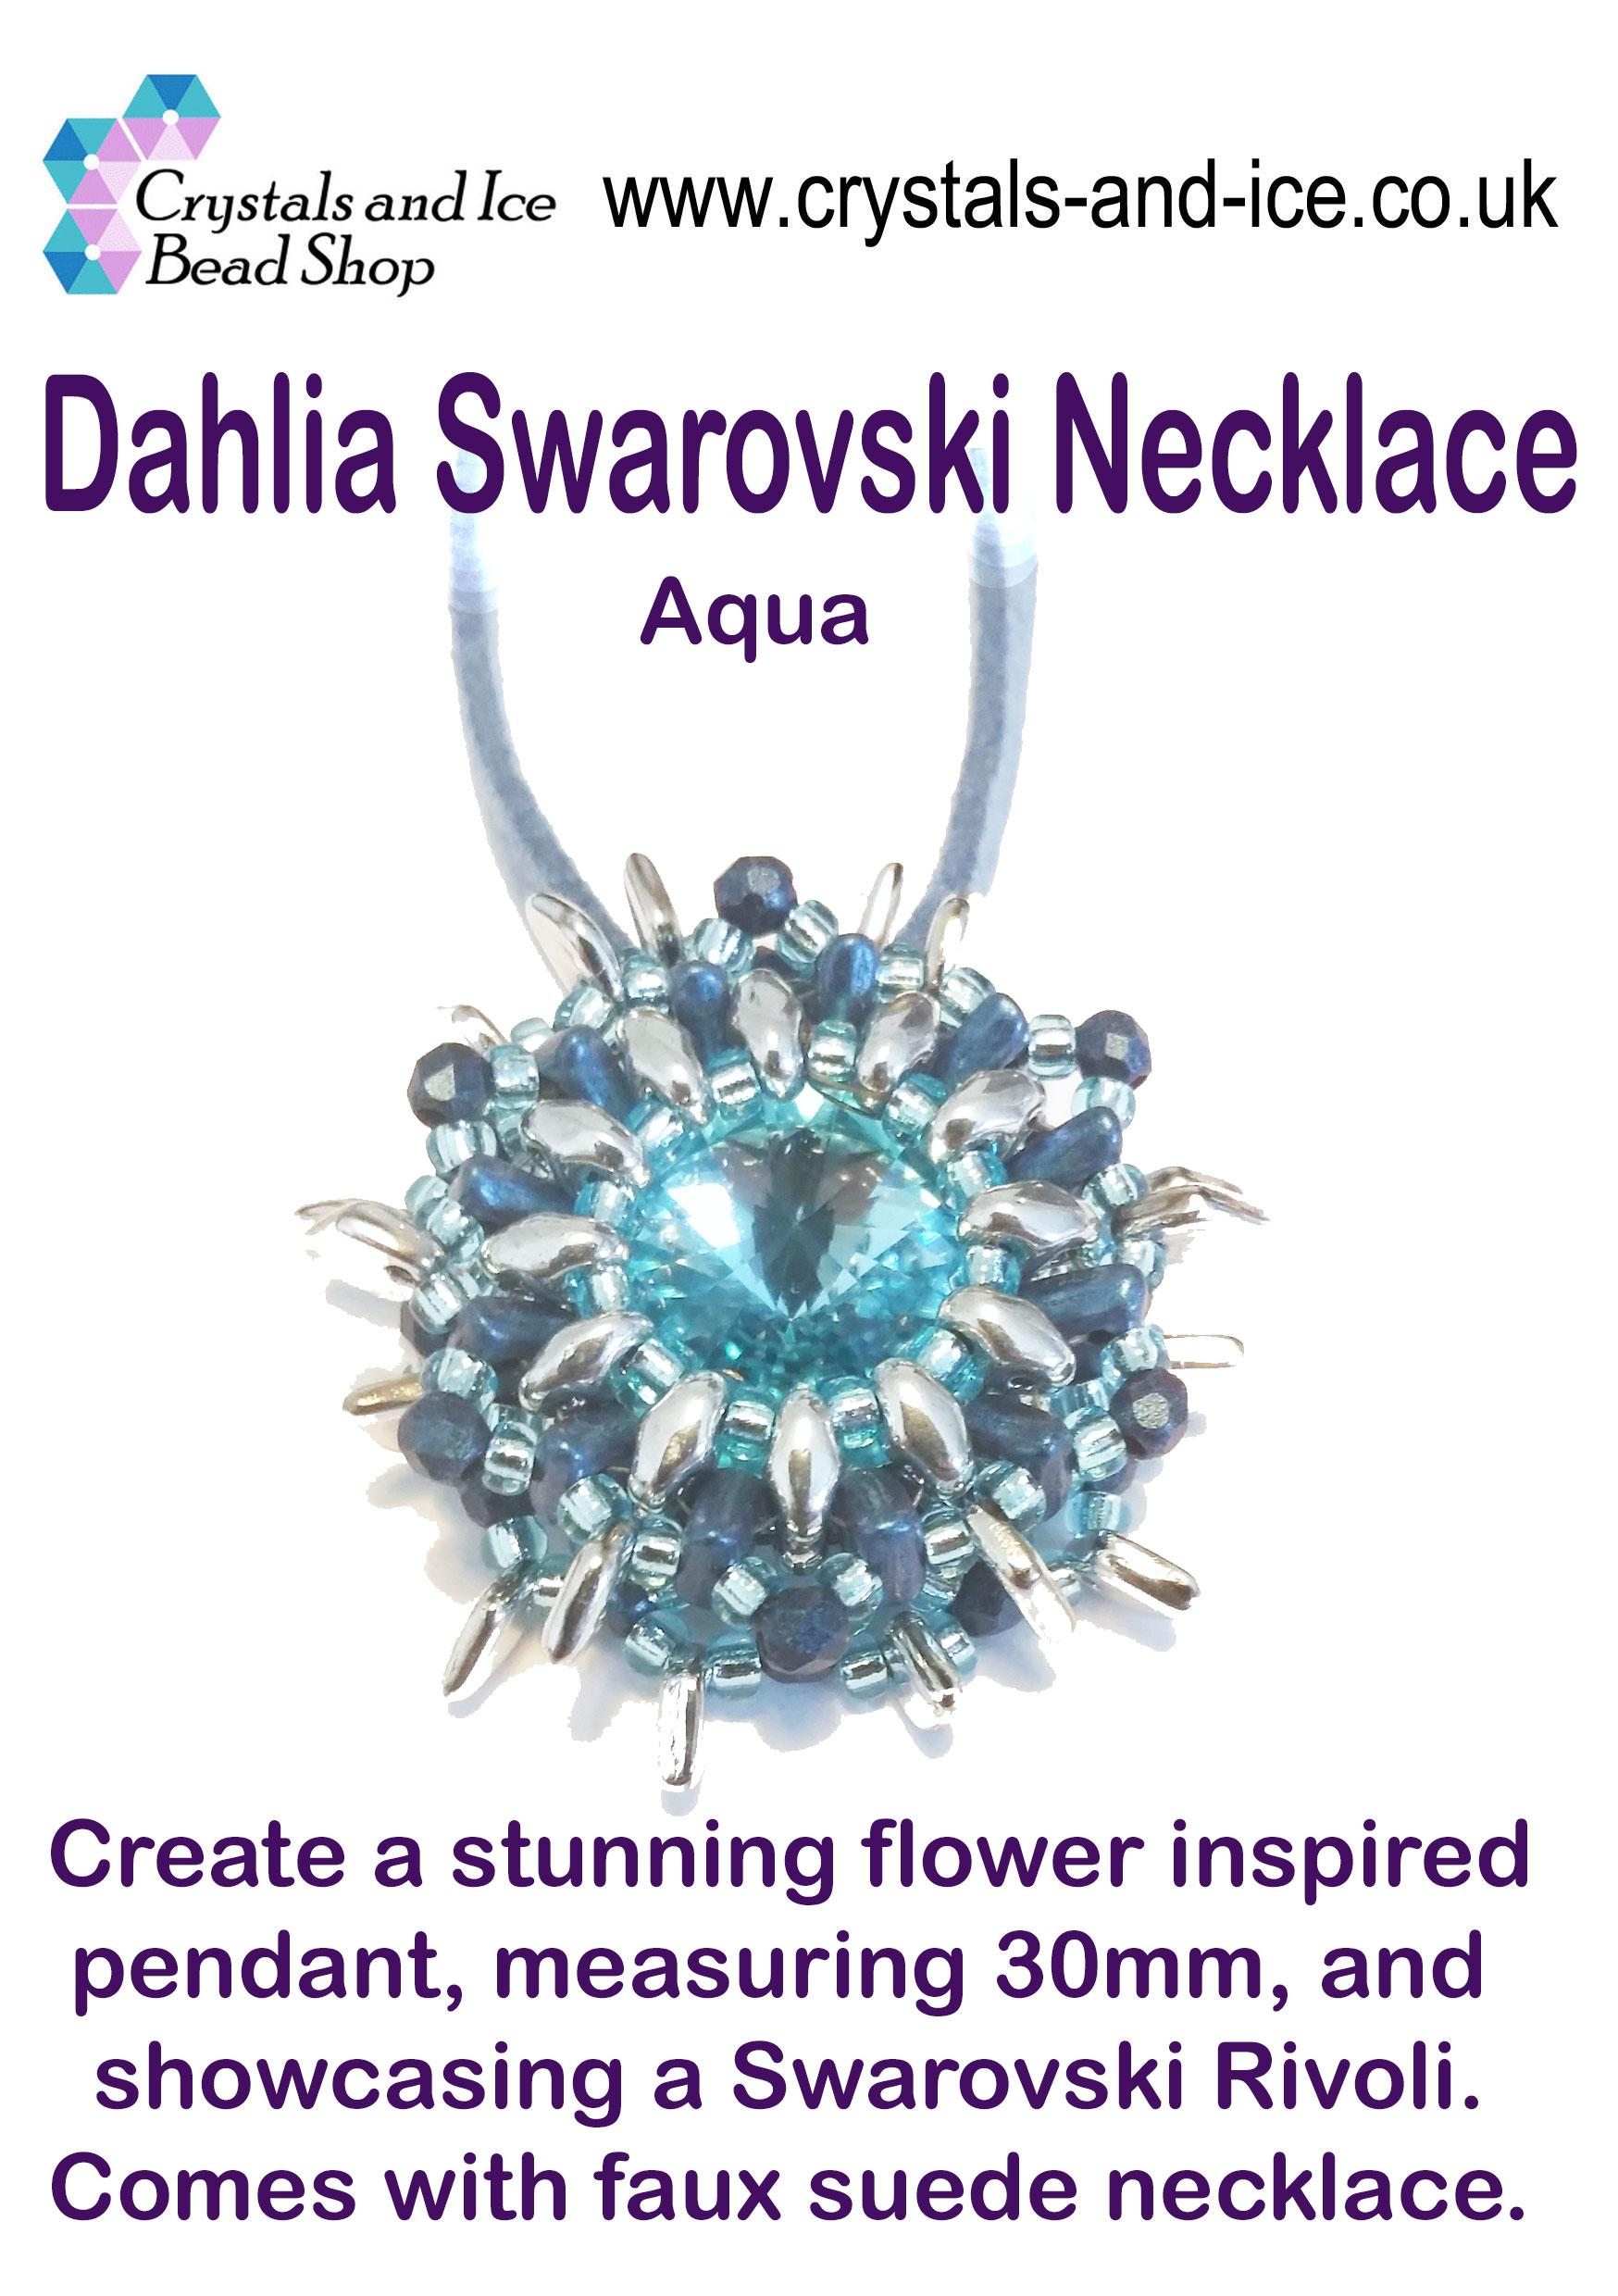 Dahlia Swarovski Necklace Kit - Aqua